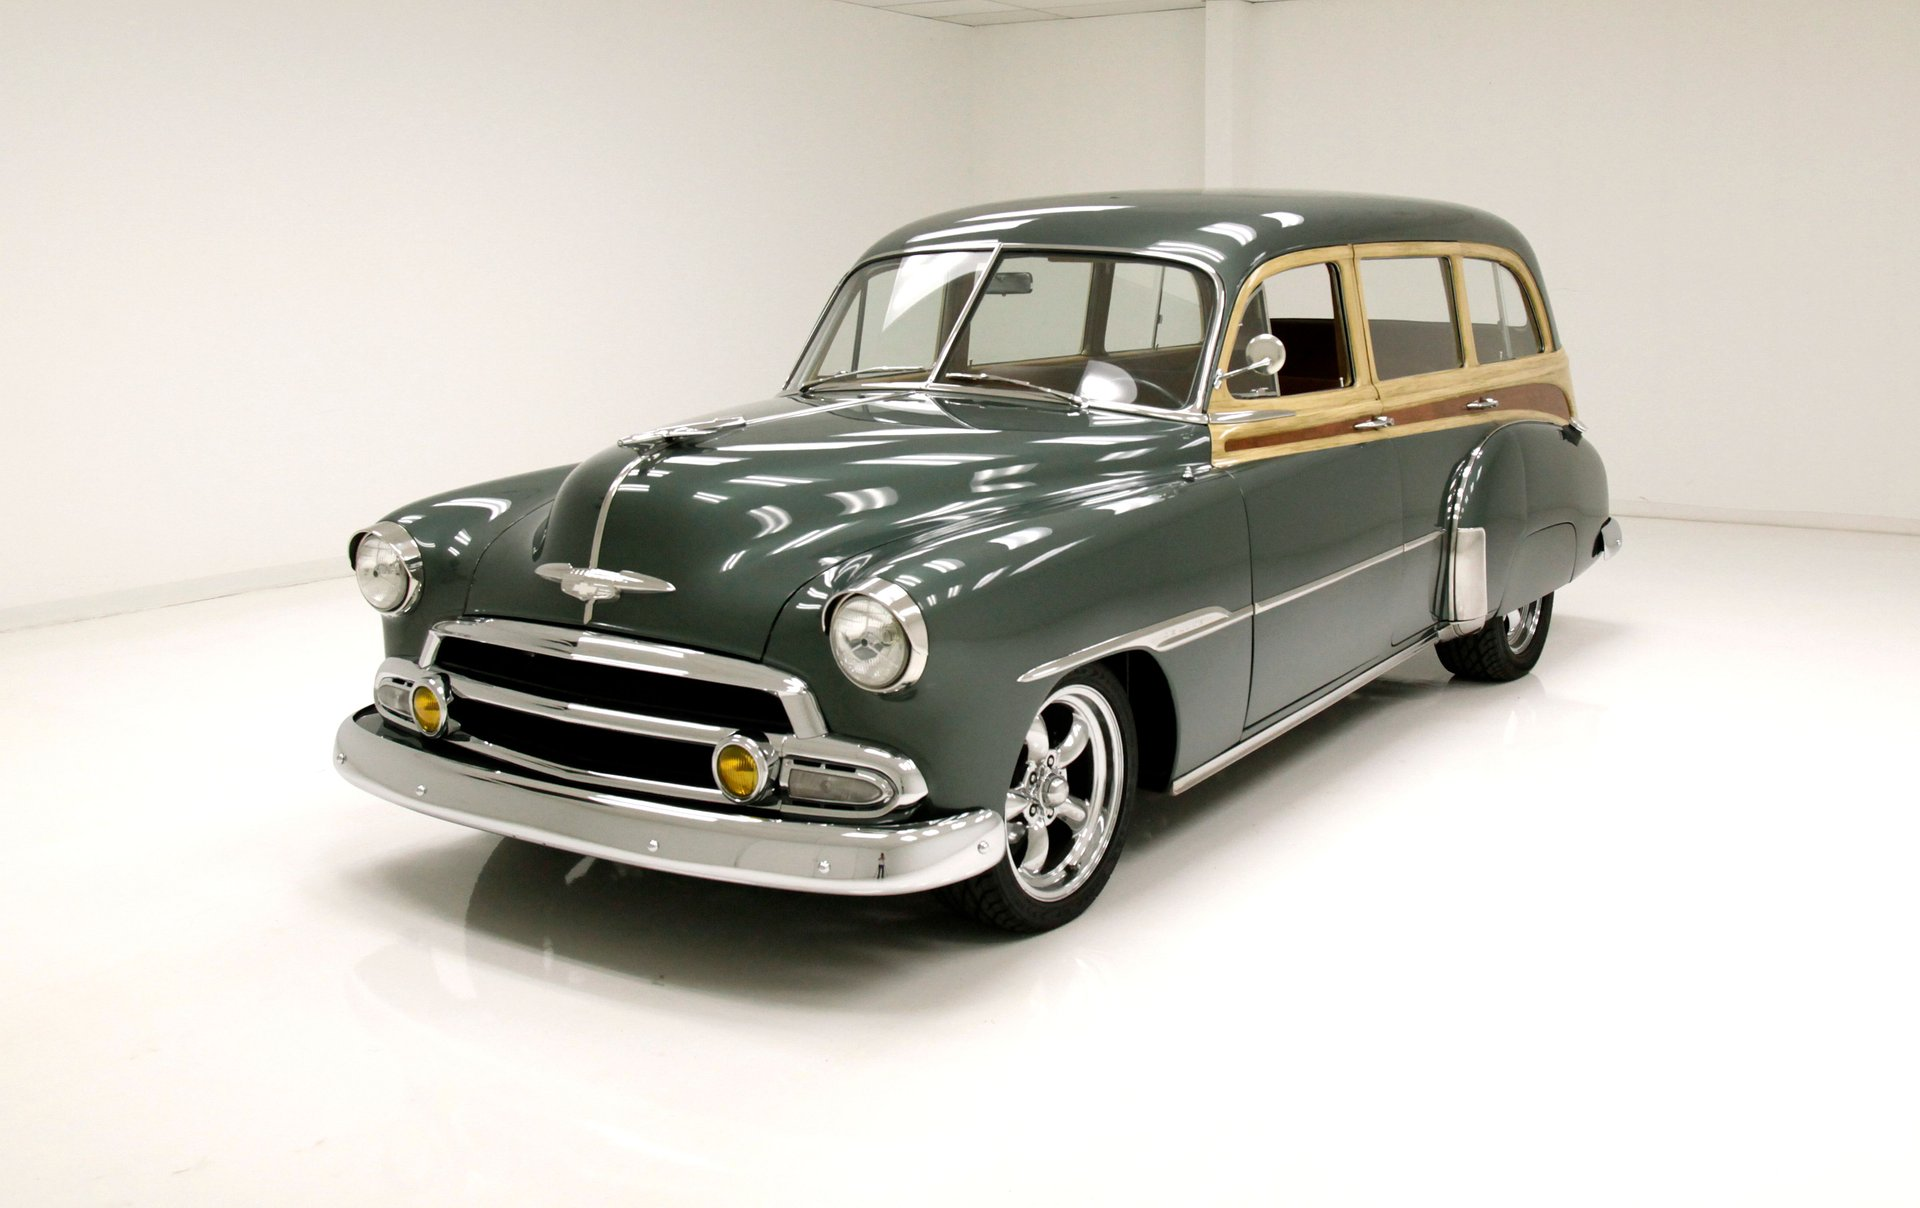 1951 Chevrolet Fleetline Wagon